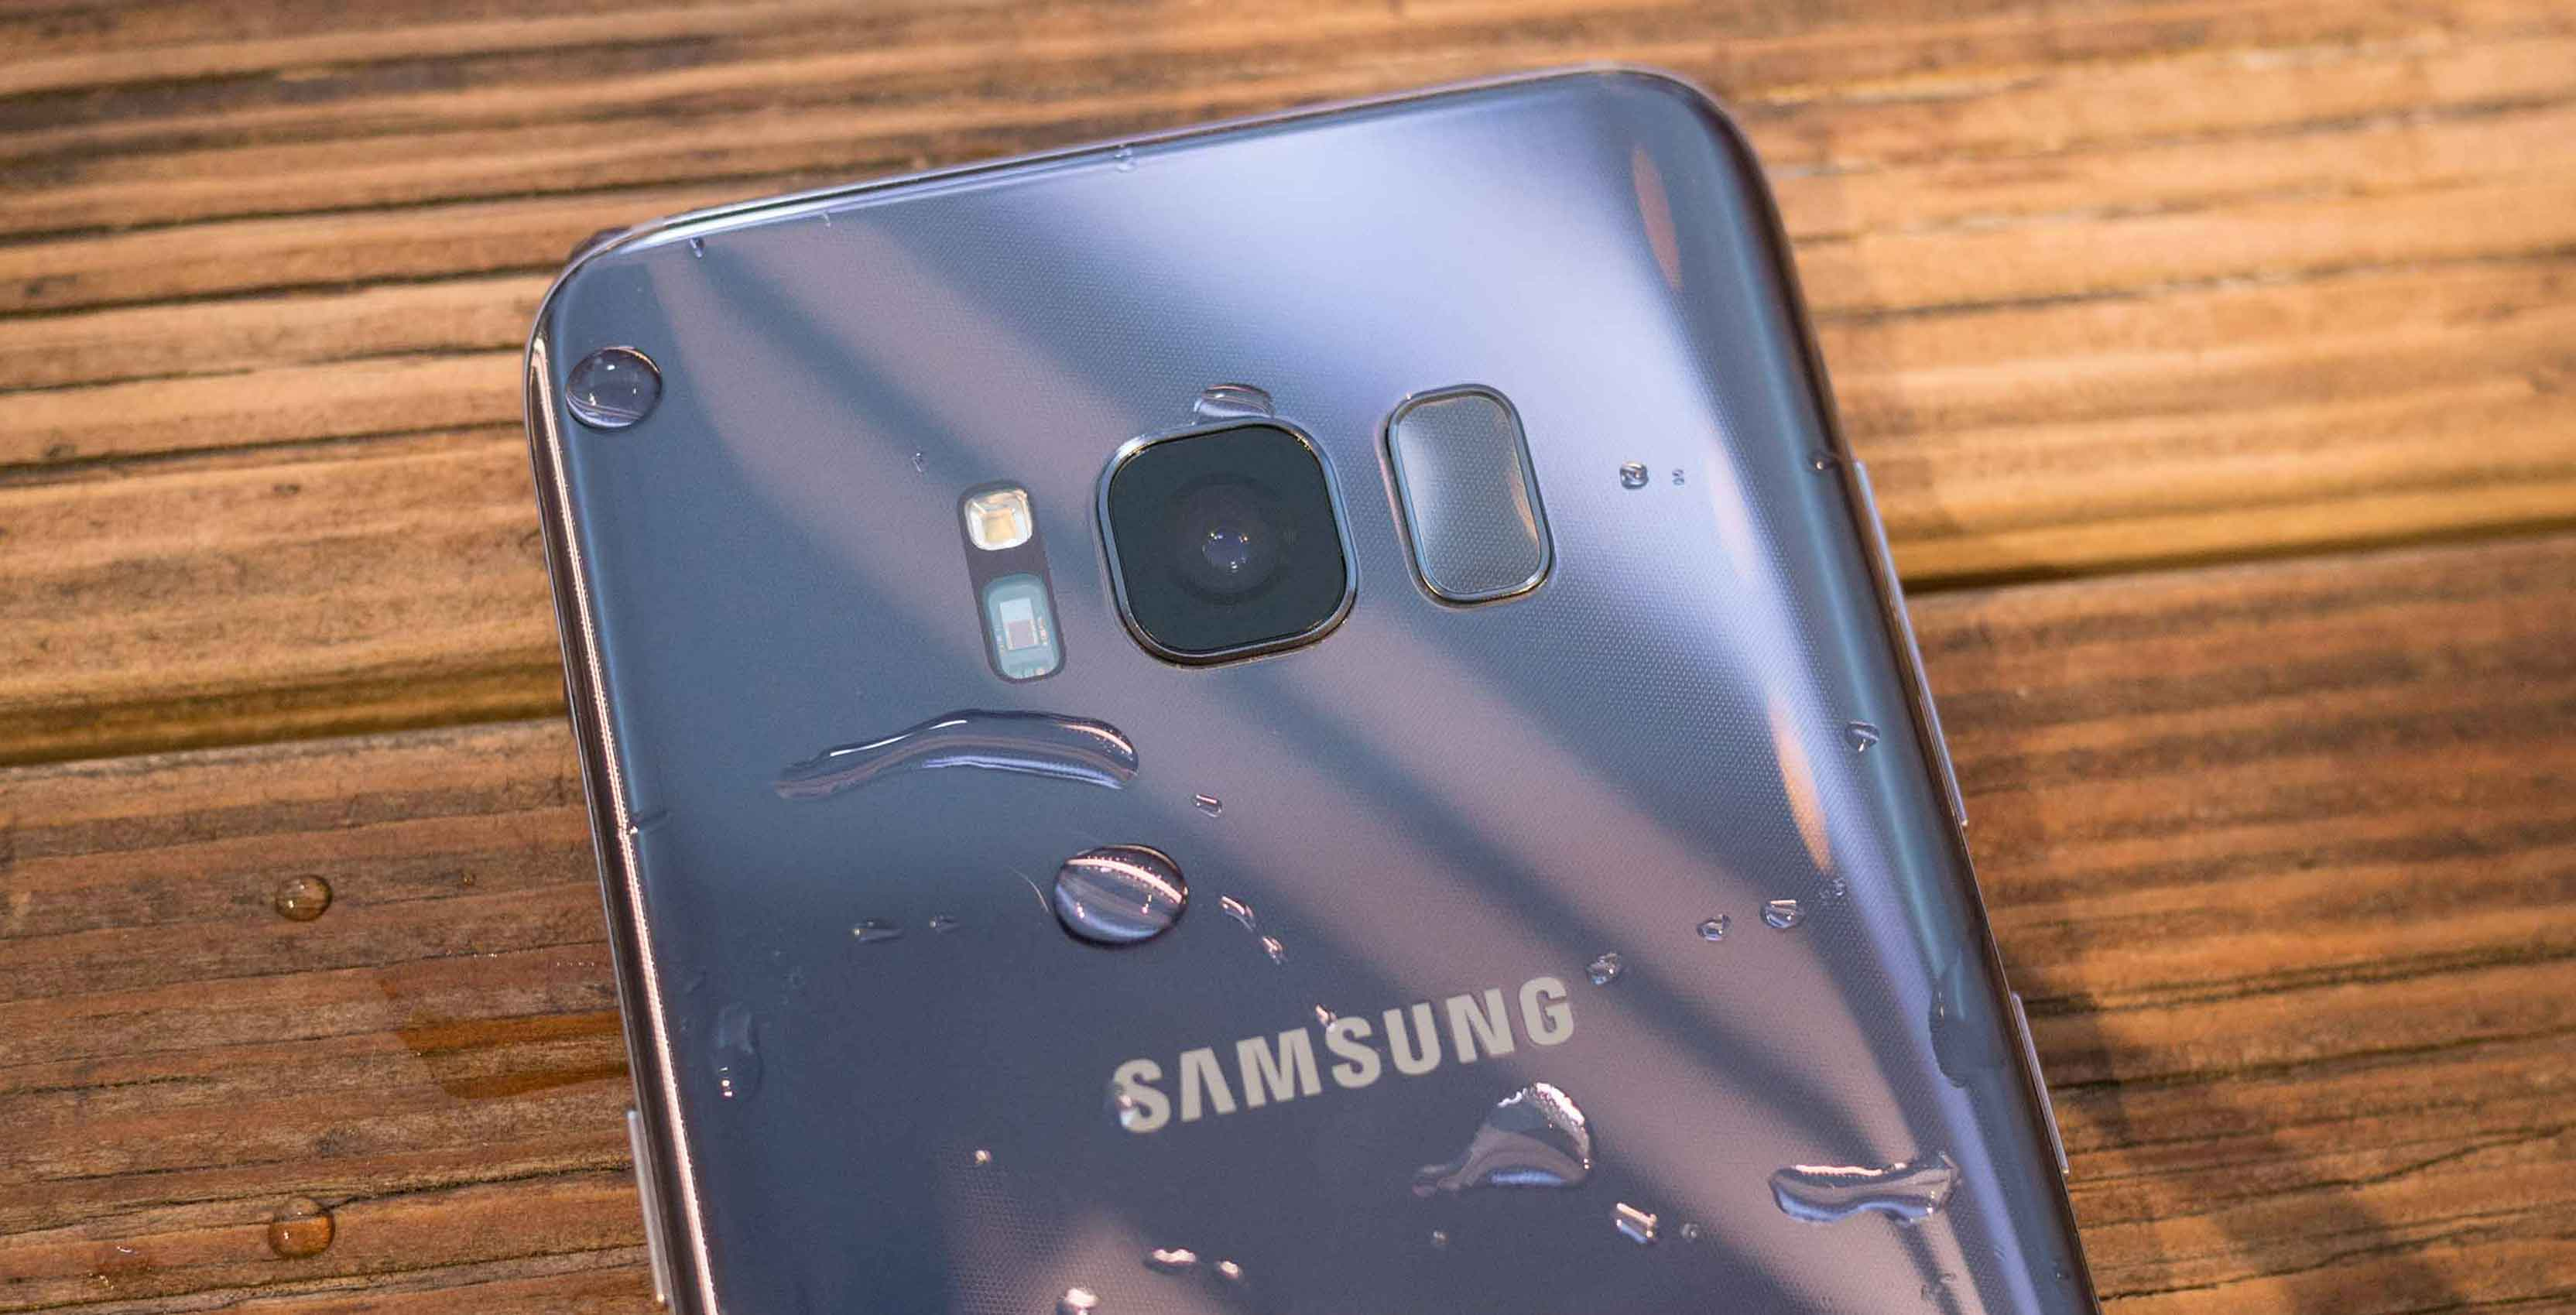 Samsung Galaxy S8 and S8+ Hands-on: The death of the bezel